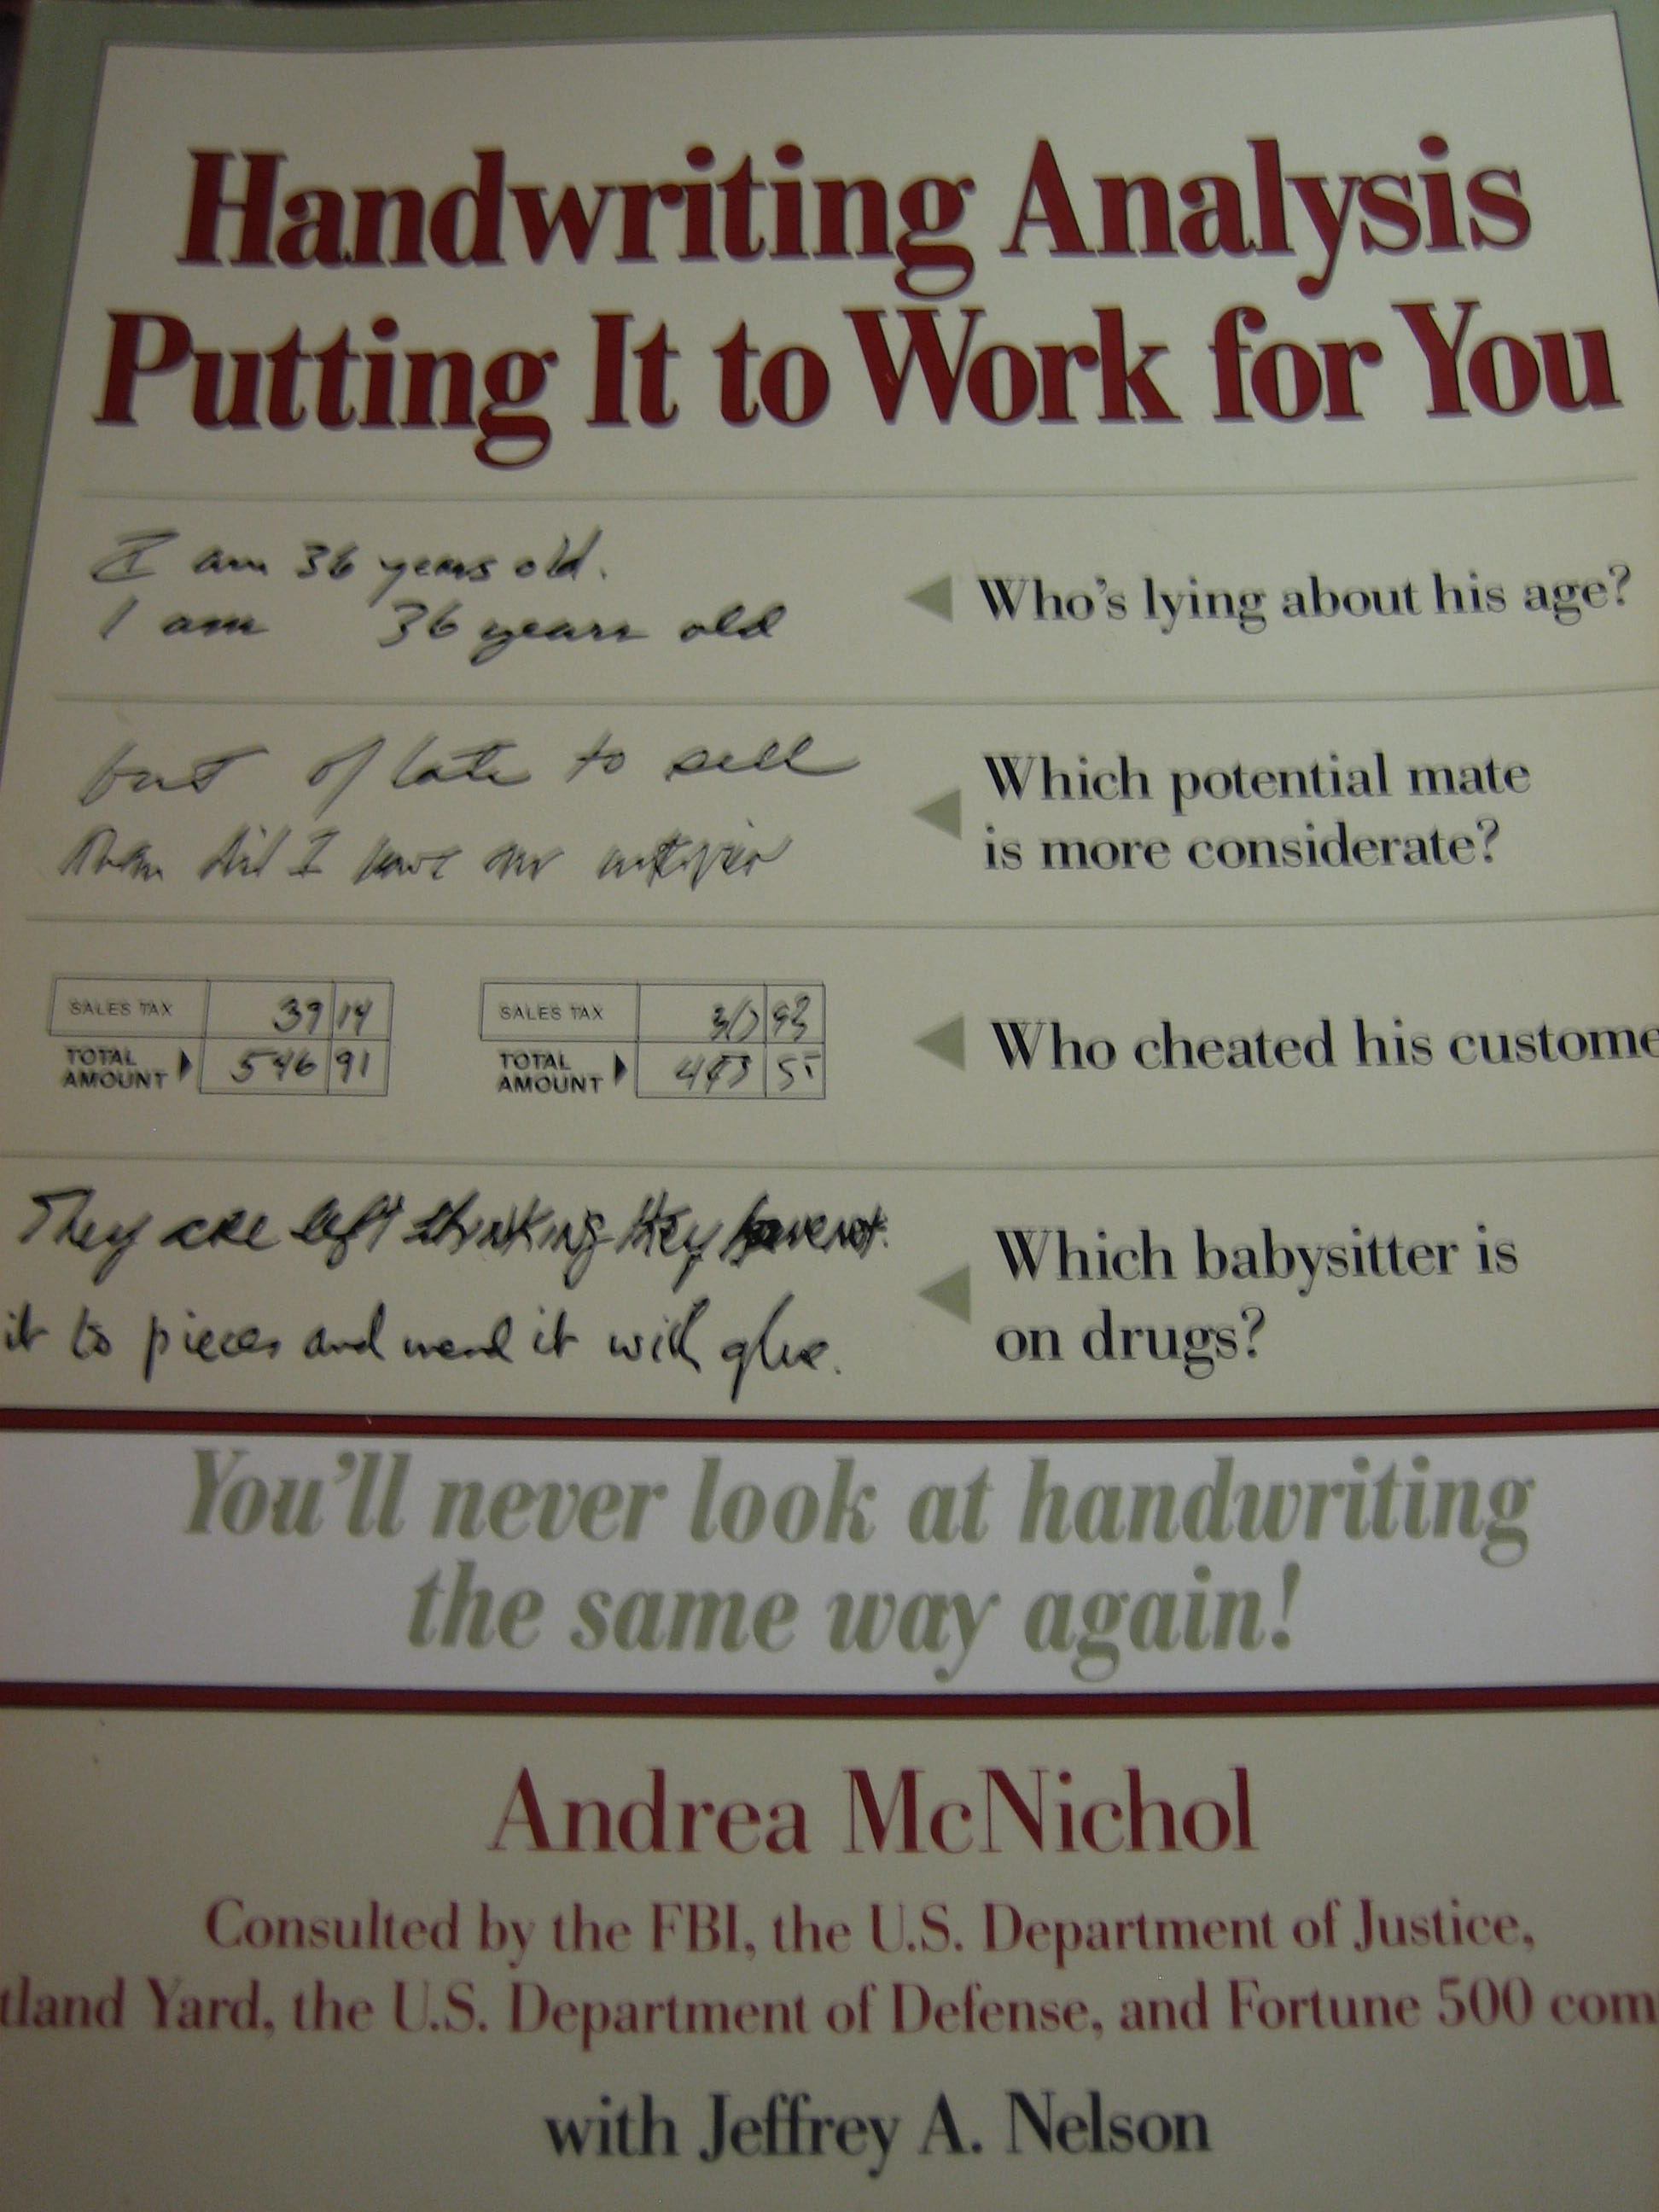 ANDREA MCNICHOL HANDWRITING ANALYSIS PDF